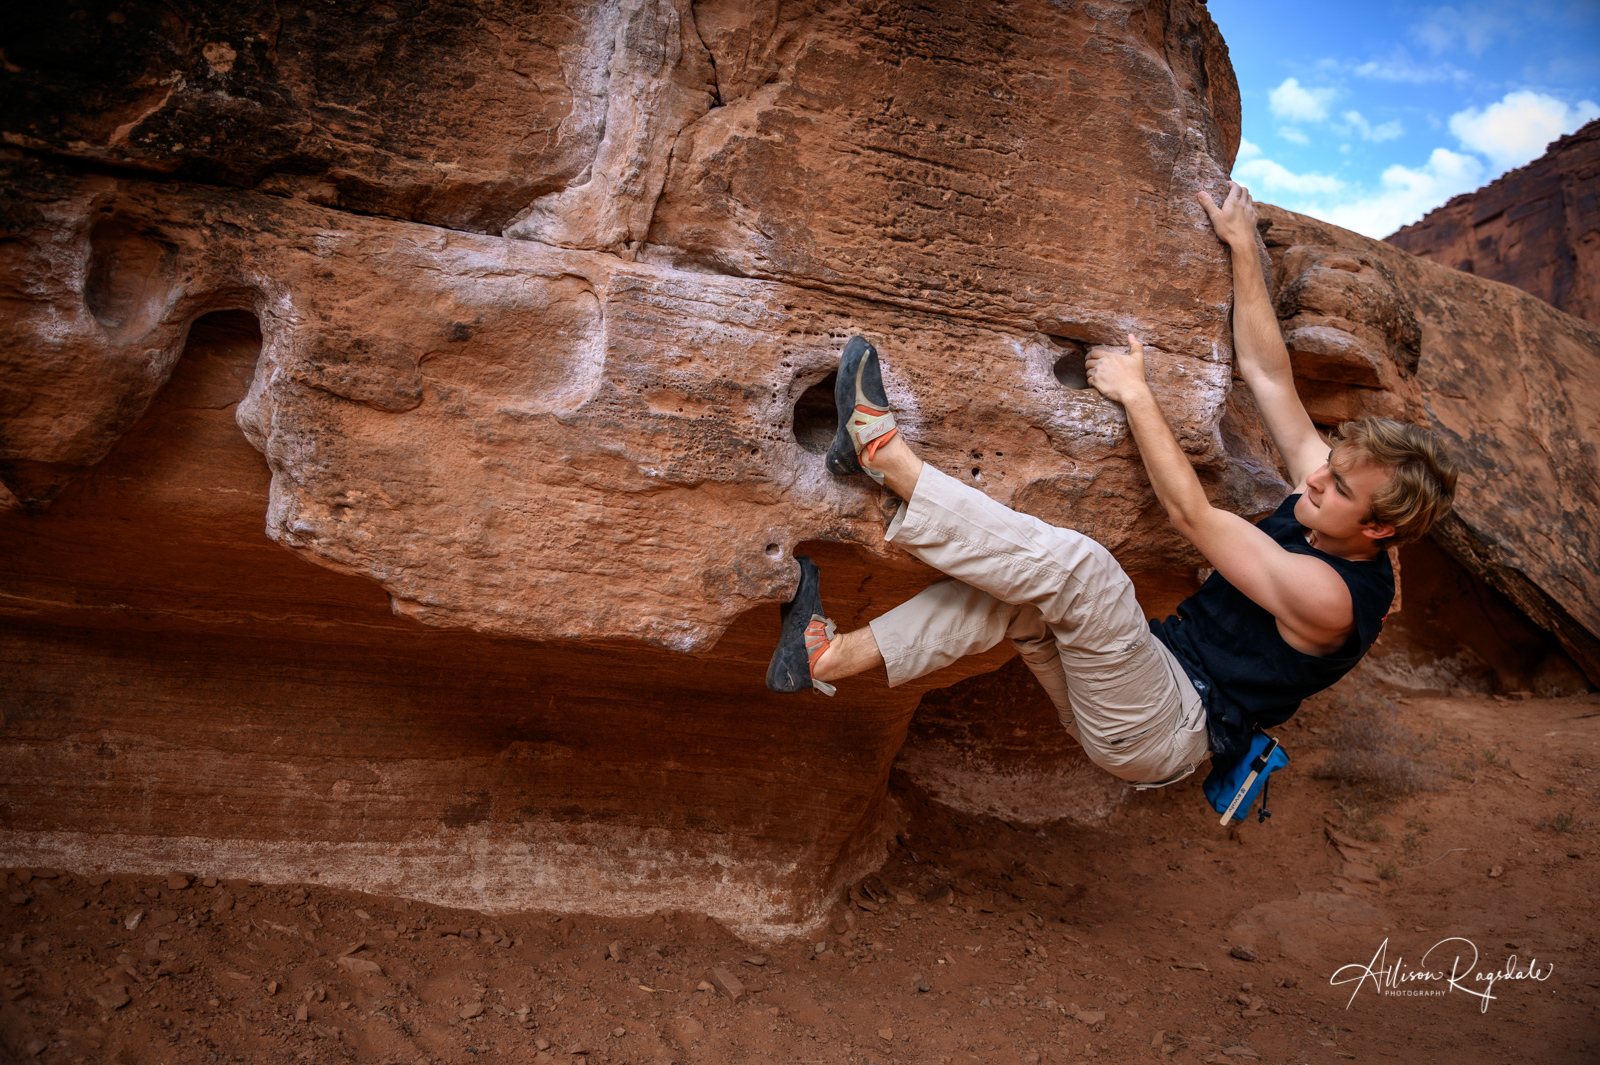 Climbing photos in Moab